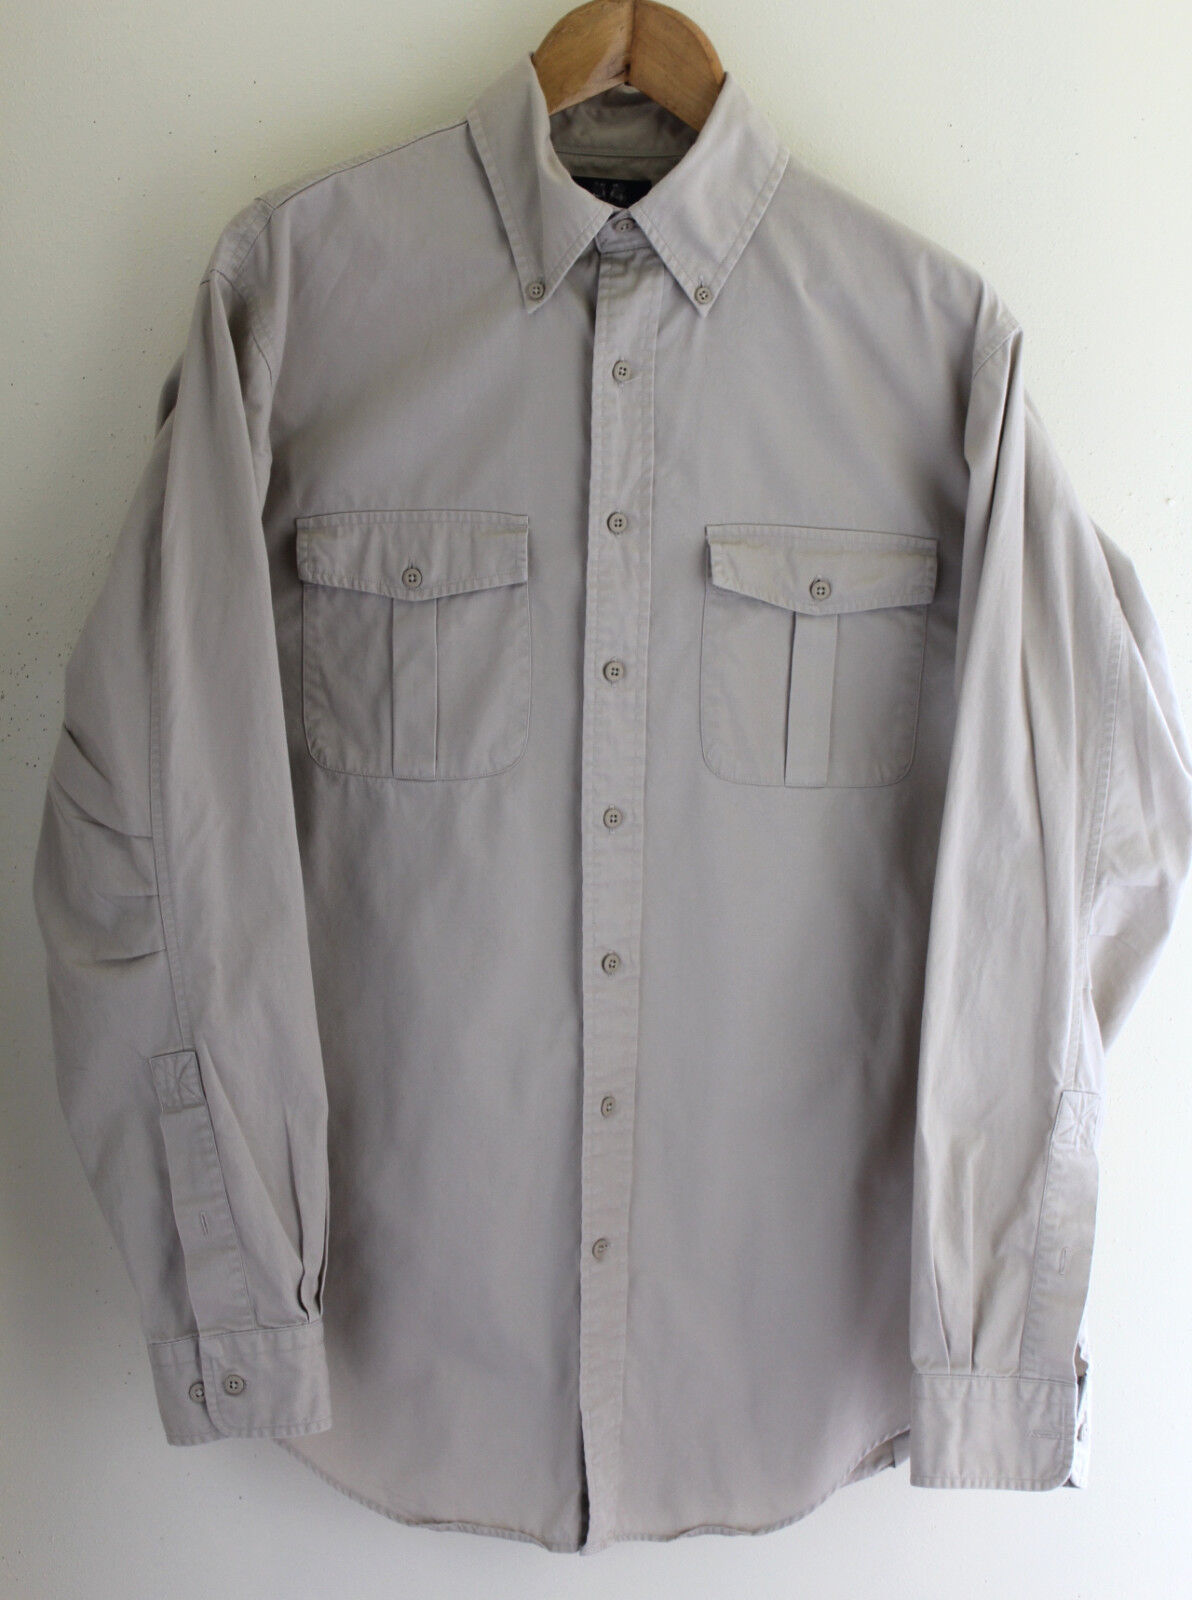 WILLIS & GEIGER Vintage Mens Light Khaki Twill Shirt M 15-15.5 Tall